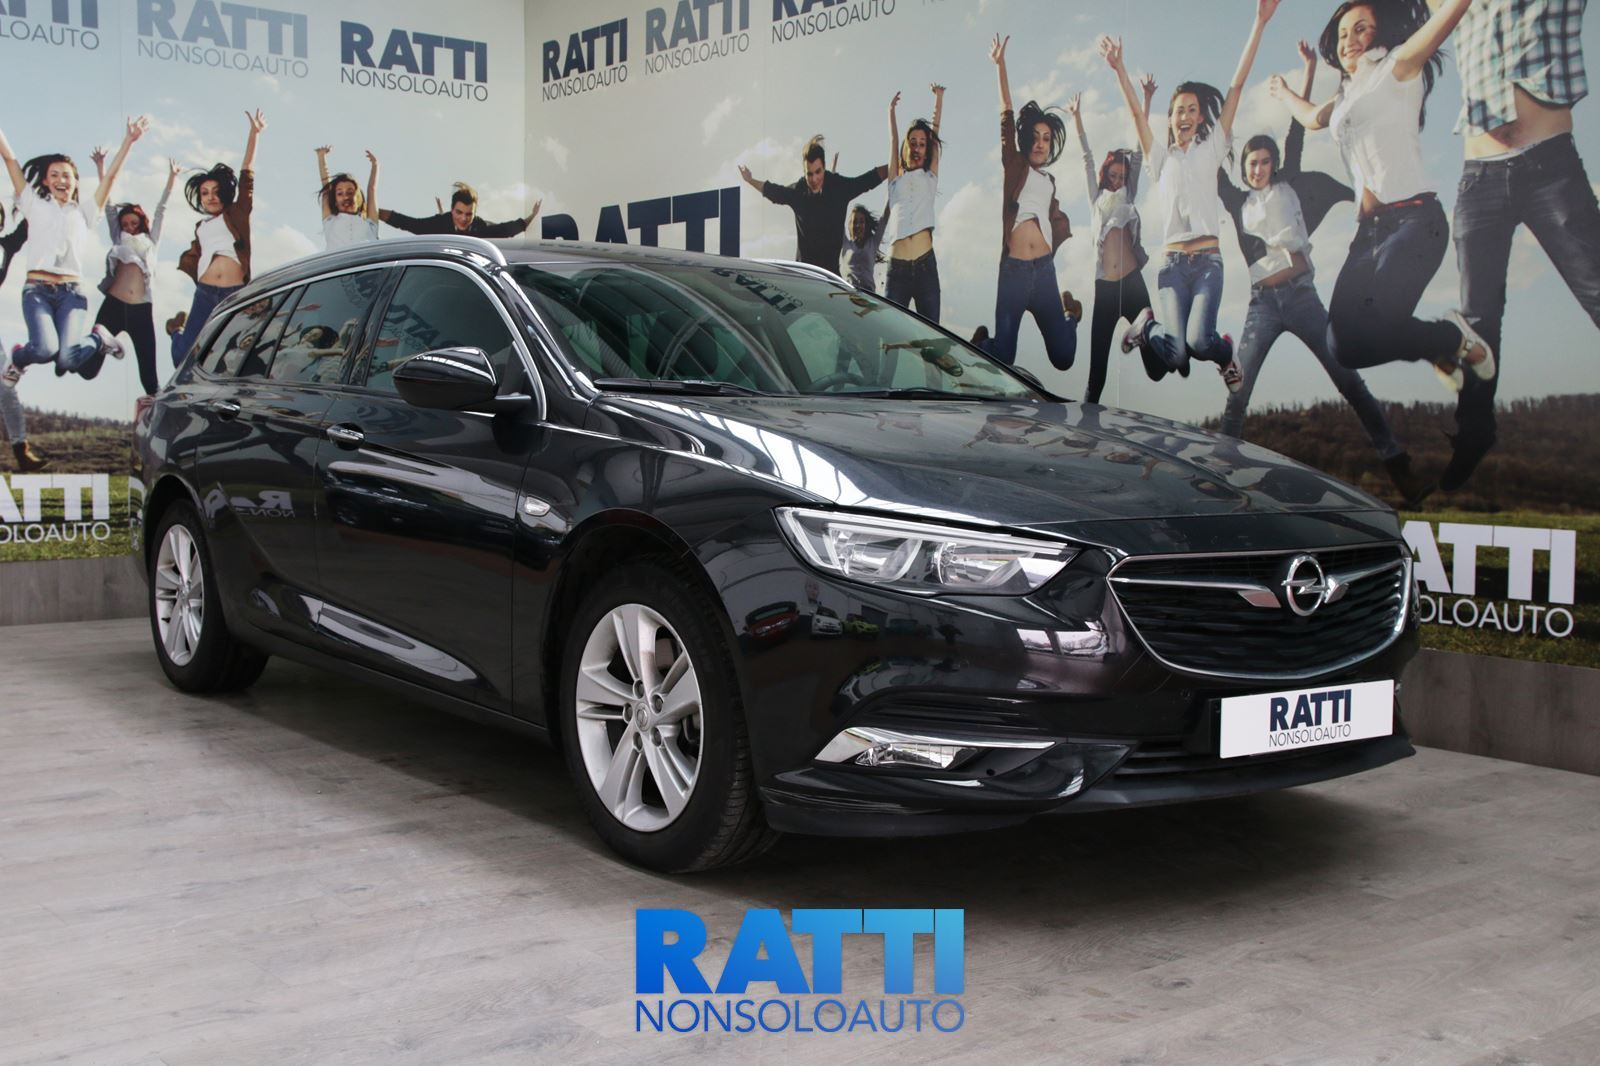 OPEL INSIGNIA SPORTS TOURER INNOVATION 1.6 136CV  Black Meet Kettle  cambio Automatico Diesel Aziendale station wagon 5 porte 5 posti EURO 6